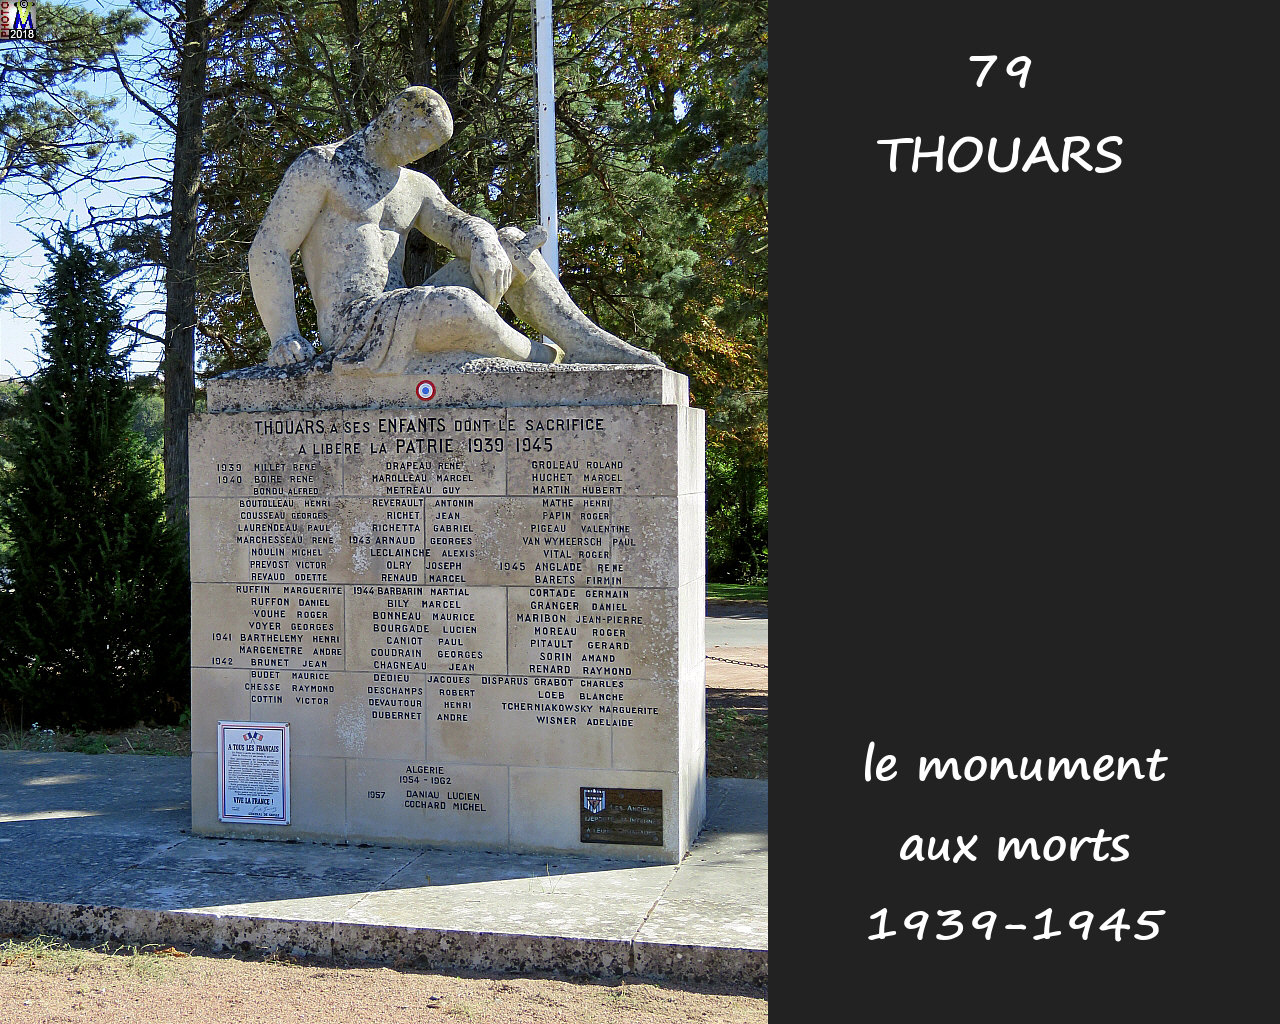 79THOUARS_morts_1002.jpg